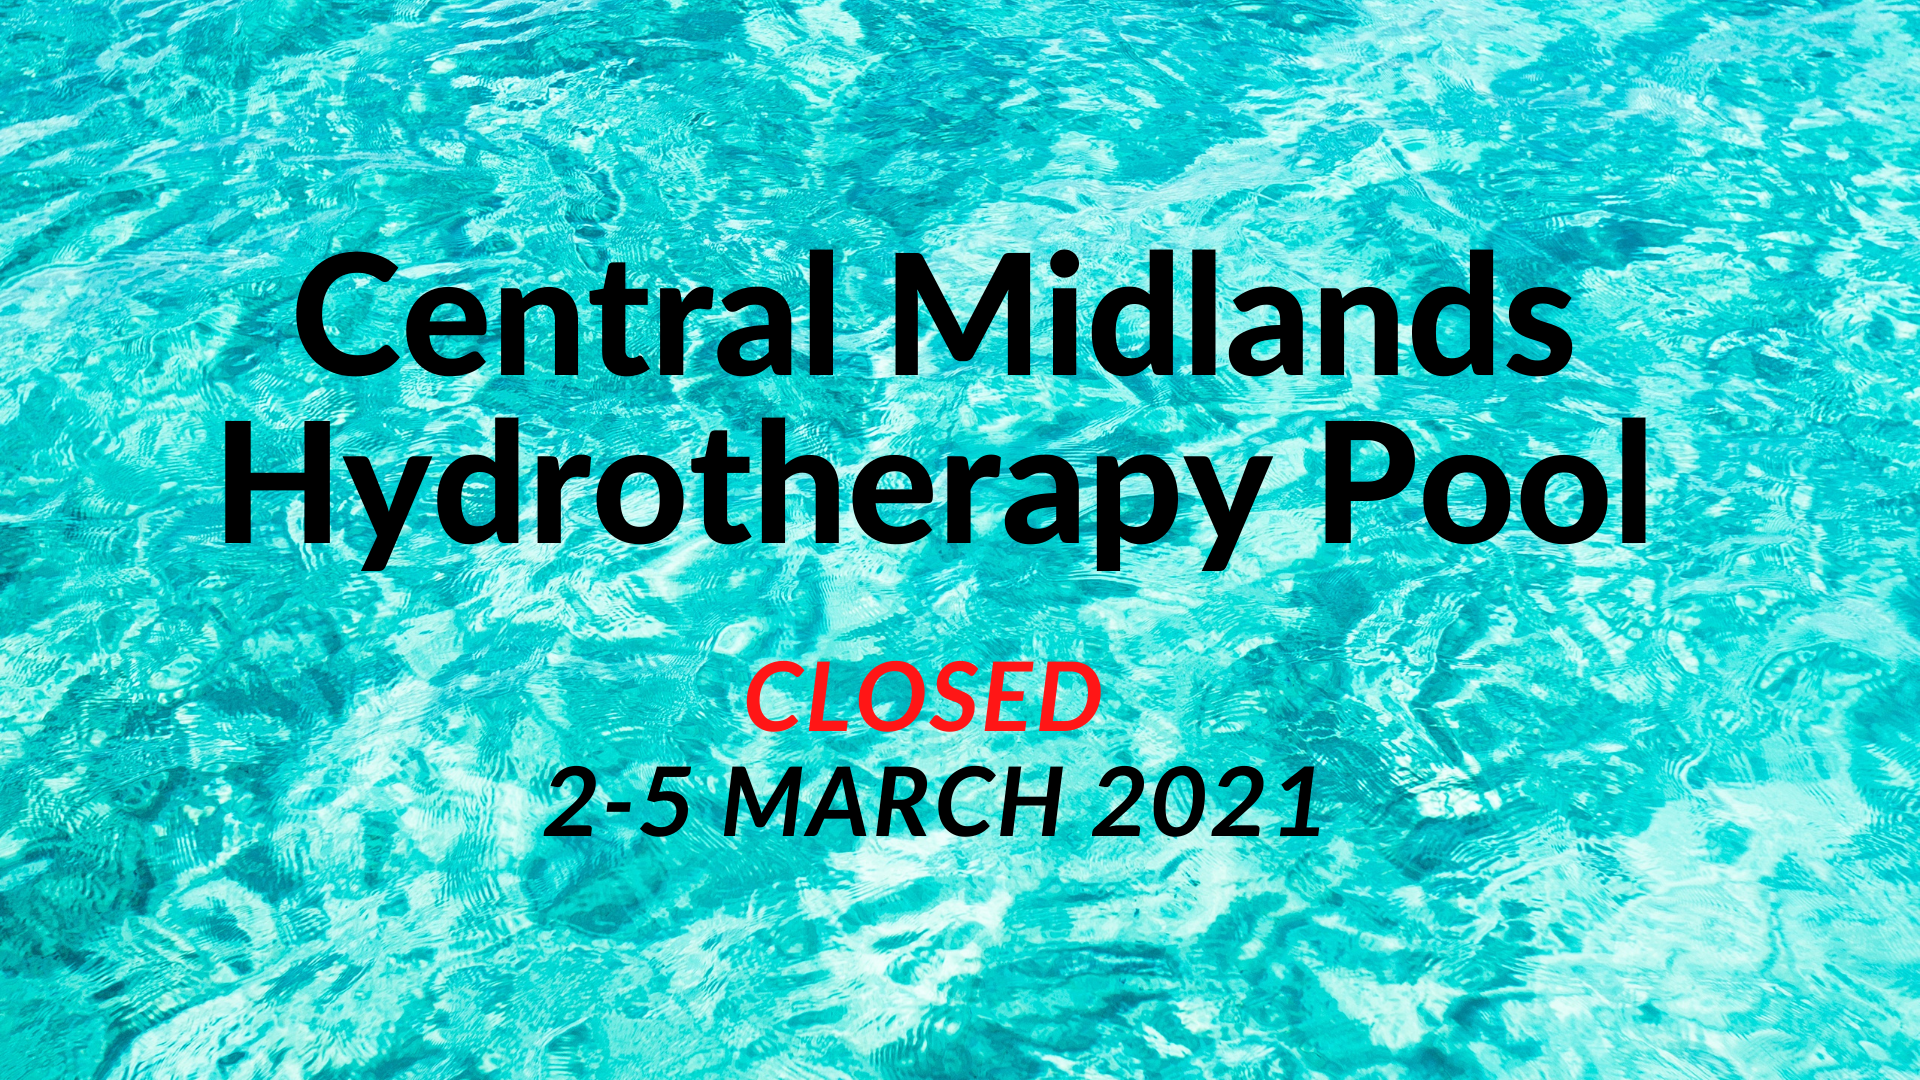 News Story: Central Midlands Hydrotherapy Pool is closed this week 2-5 March 2021.